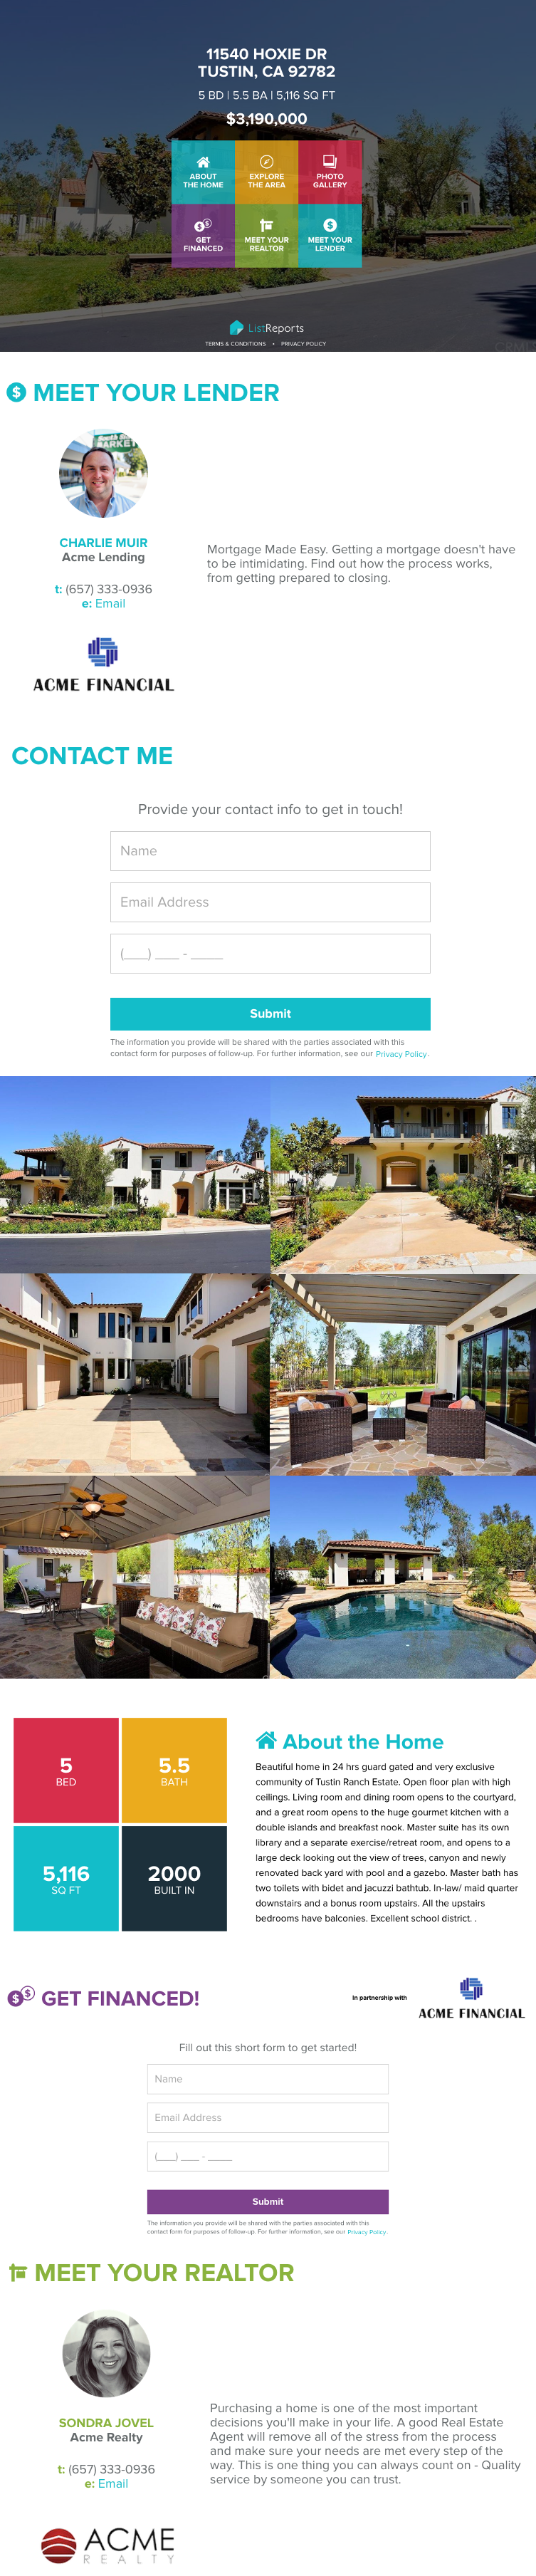 hoxie-single-property-website.png